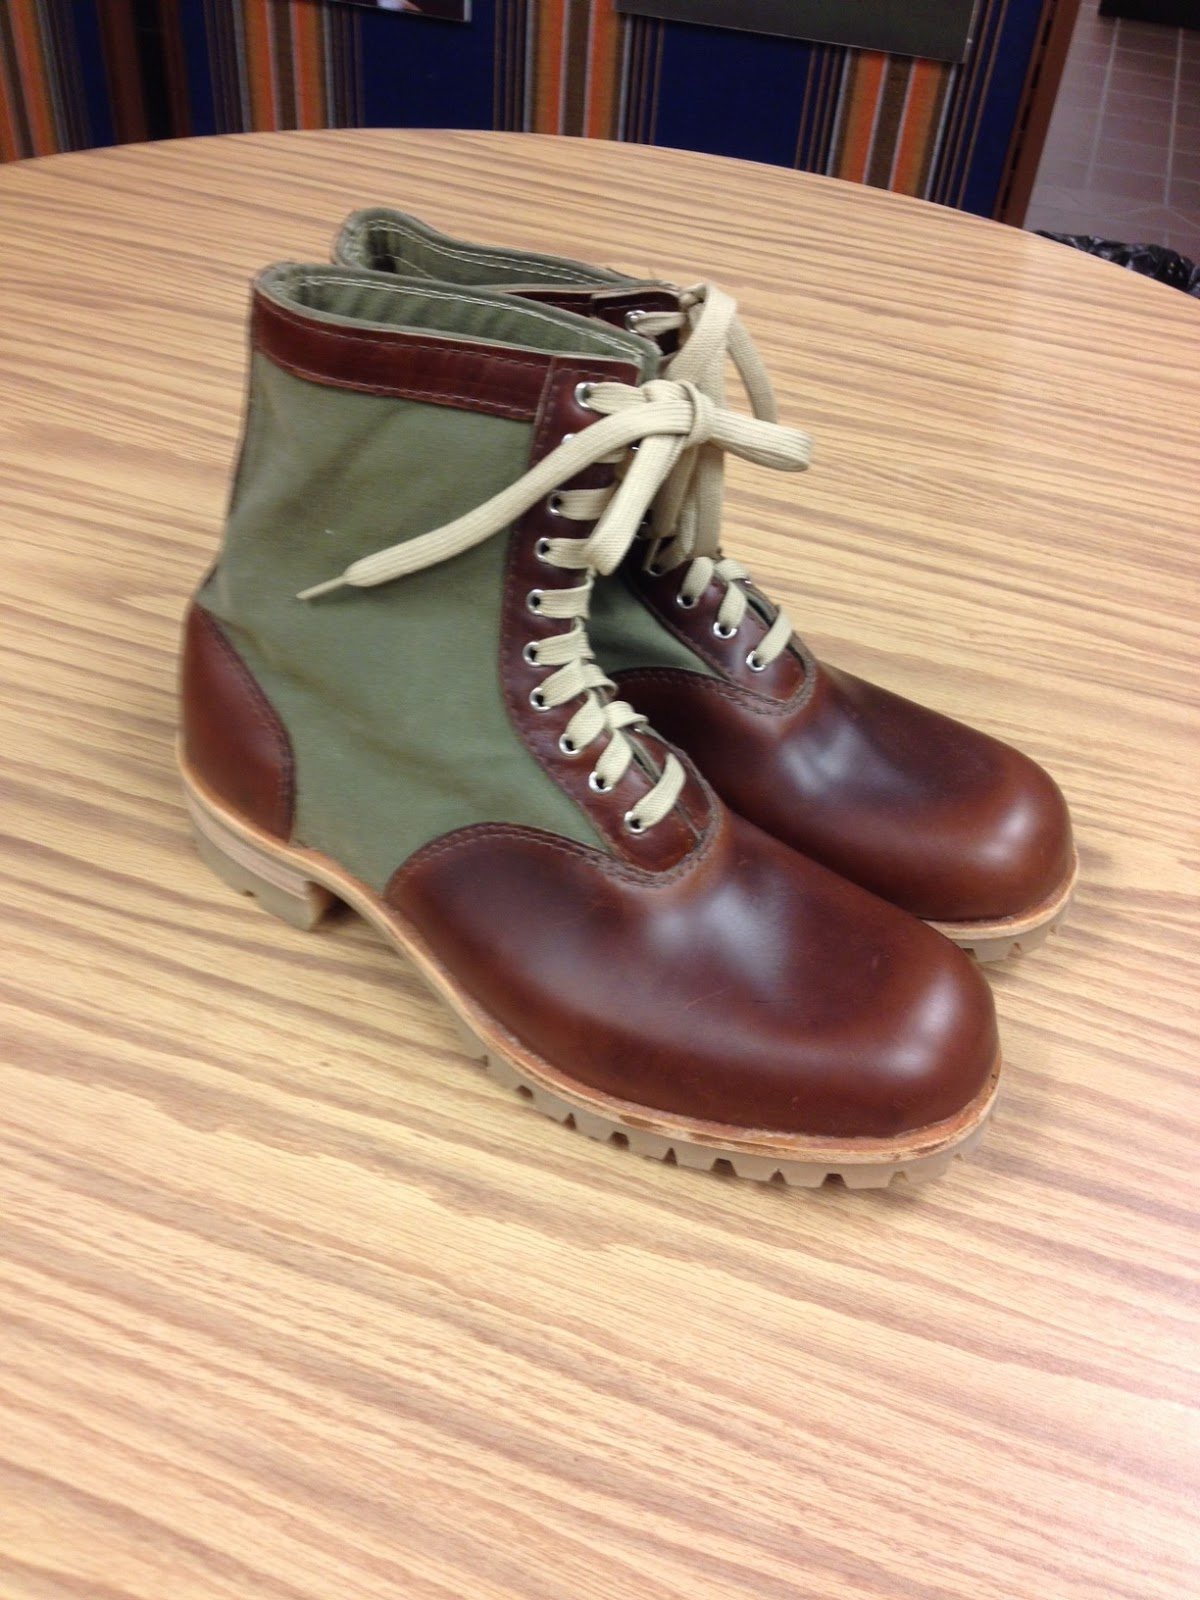 New from Mattimore Harness at Civilwarboots.com the Armbruster Tent Maker Boot! Retro style hand made in the U.S. with all American materials including ... & Armbruster Tentmaker Boots   Armbruster Tent Maker